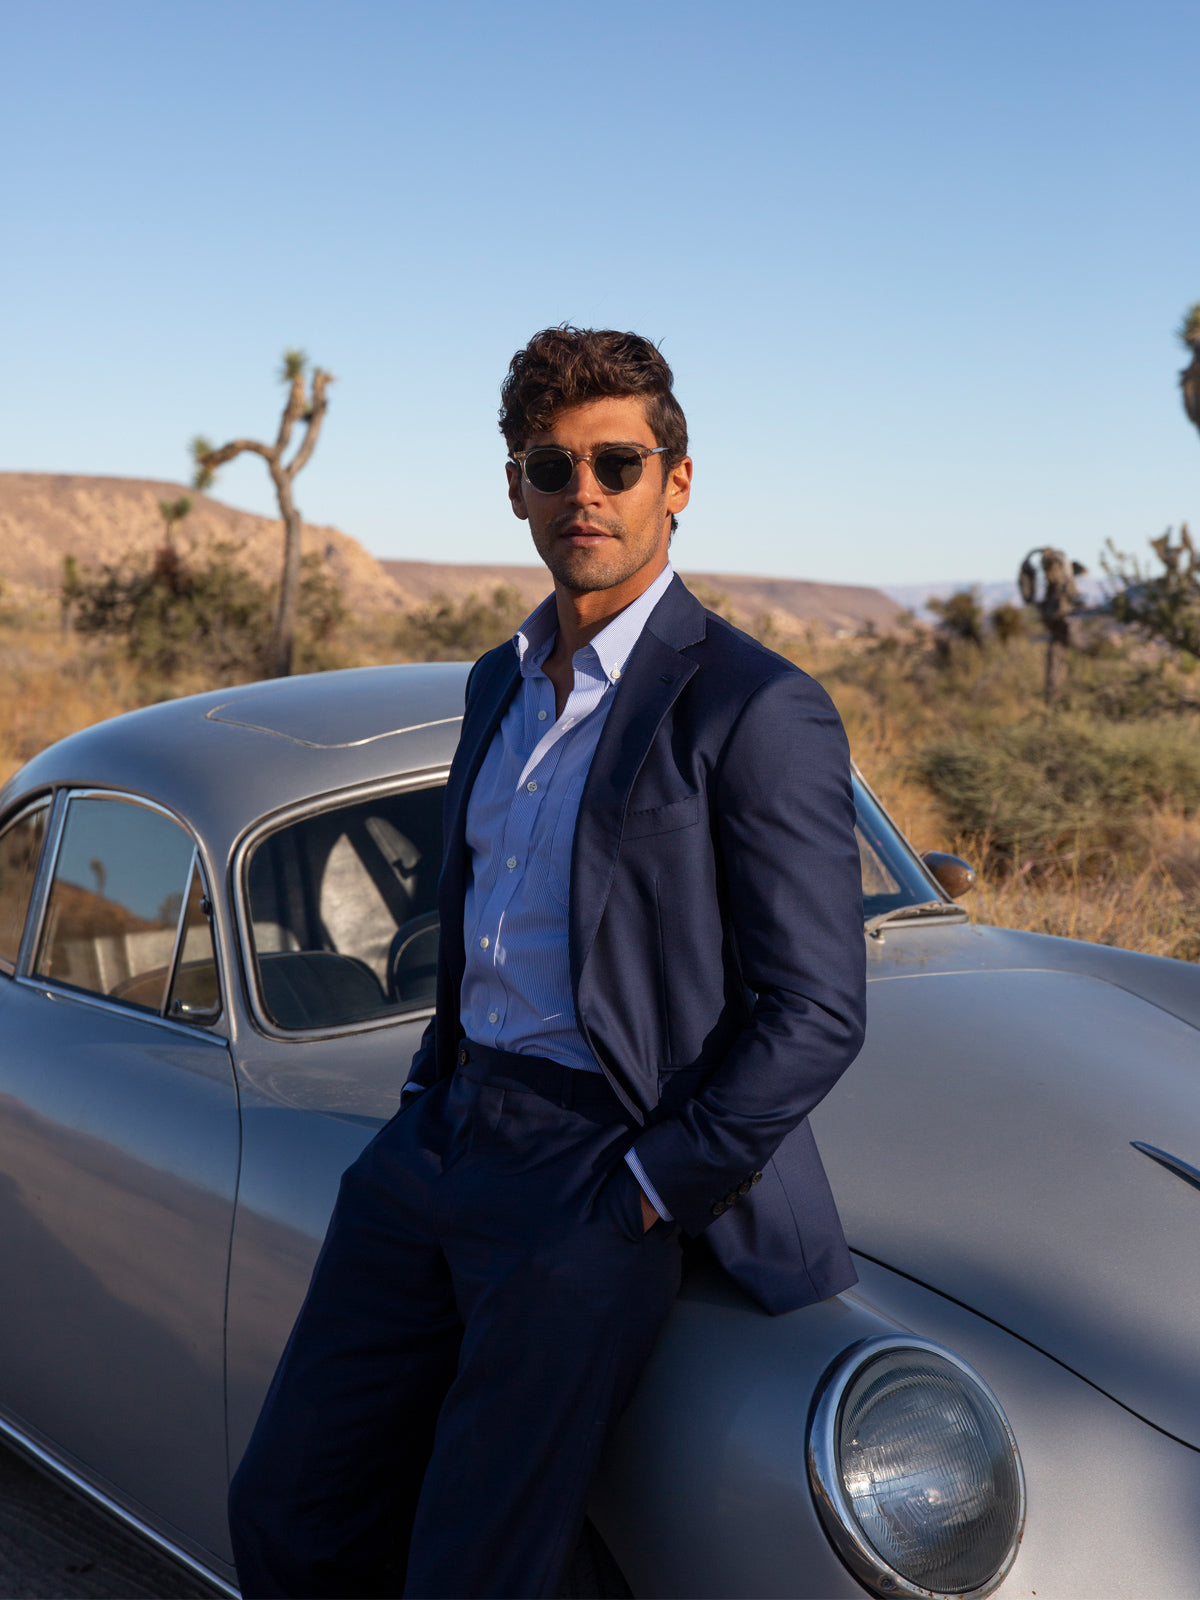 Model in suit leaning against car